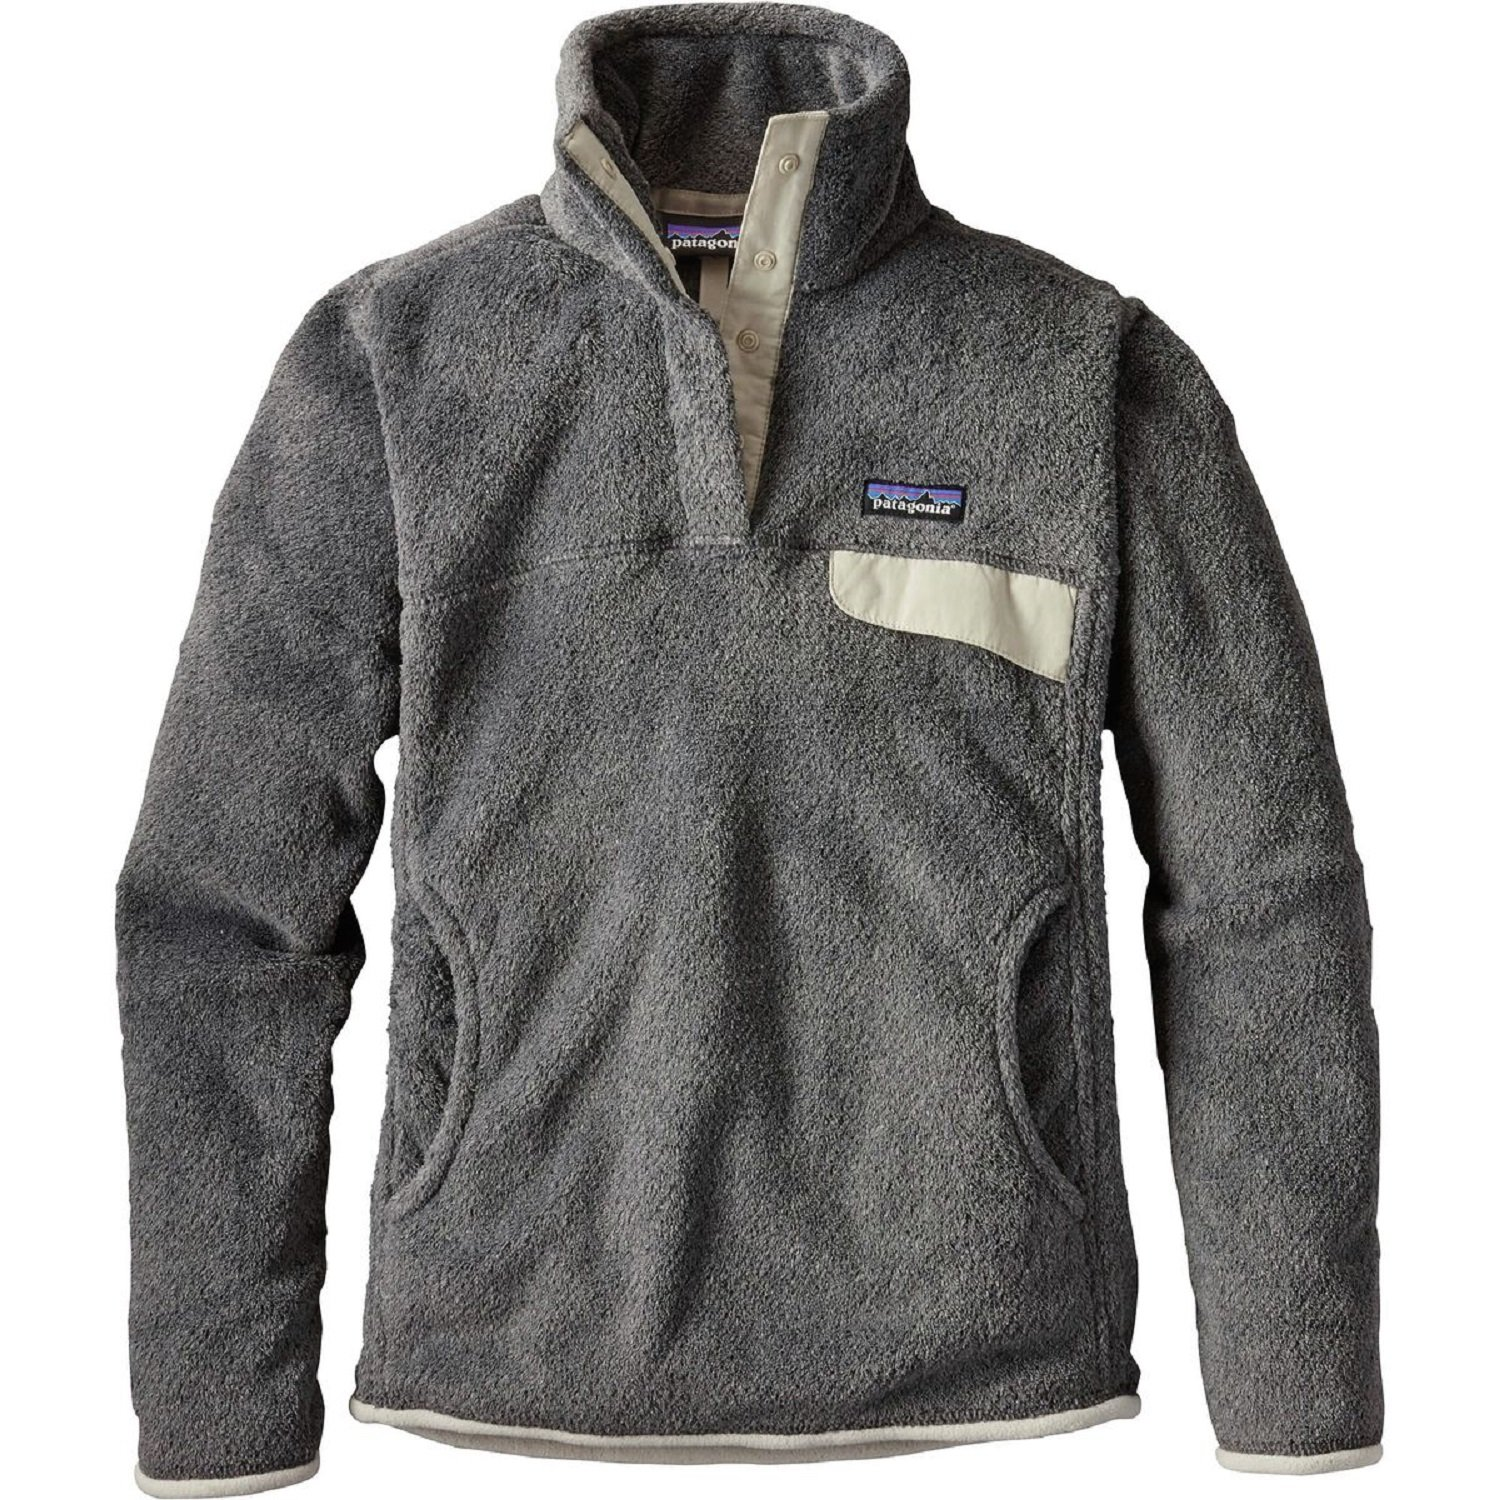 patagonia(パタゴニア) ウィメンズリツールスナップTプルオーバー Ws Re-Tool Snap-T P/O 25442 B01MY9AJ22 Small|Feather Grey/Ink Black X-dye Feather Grey/Ink Black X-dye Small